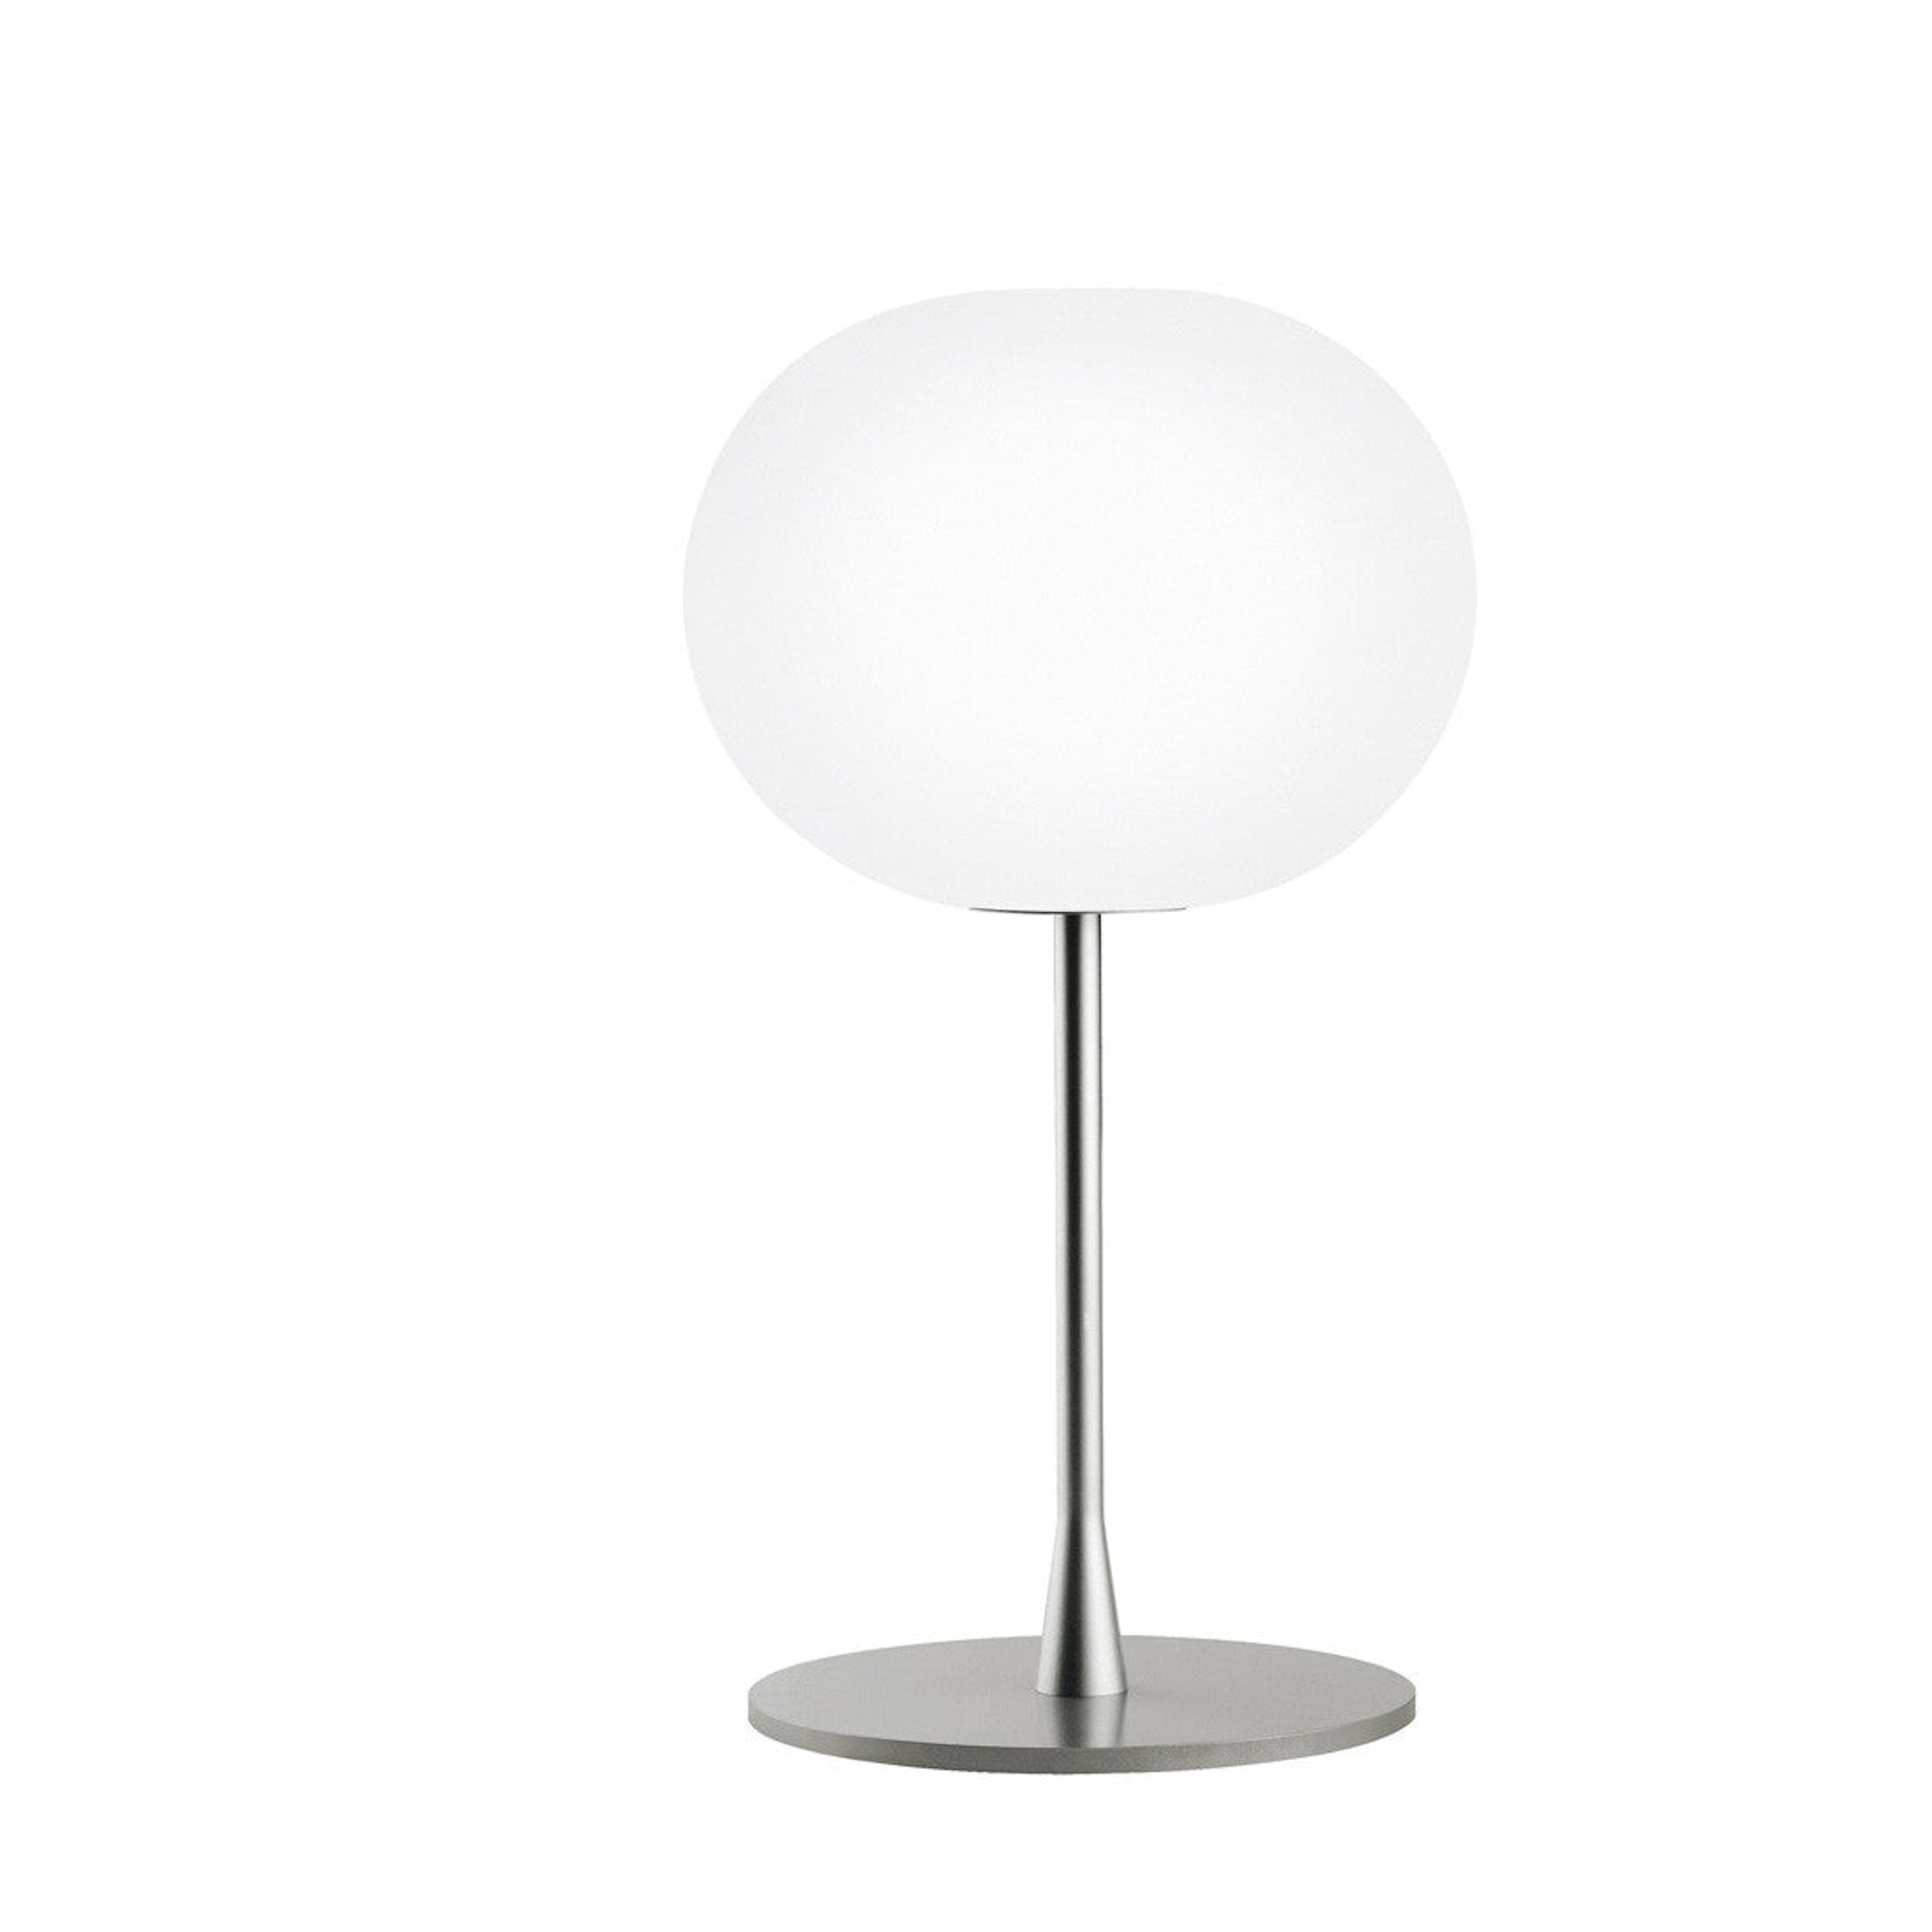 Glo Ball Table Lamp by Jasper Morrison